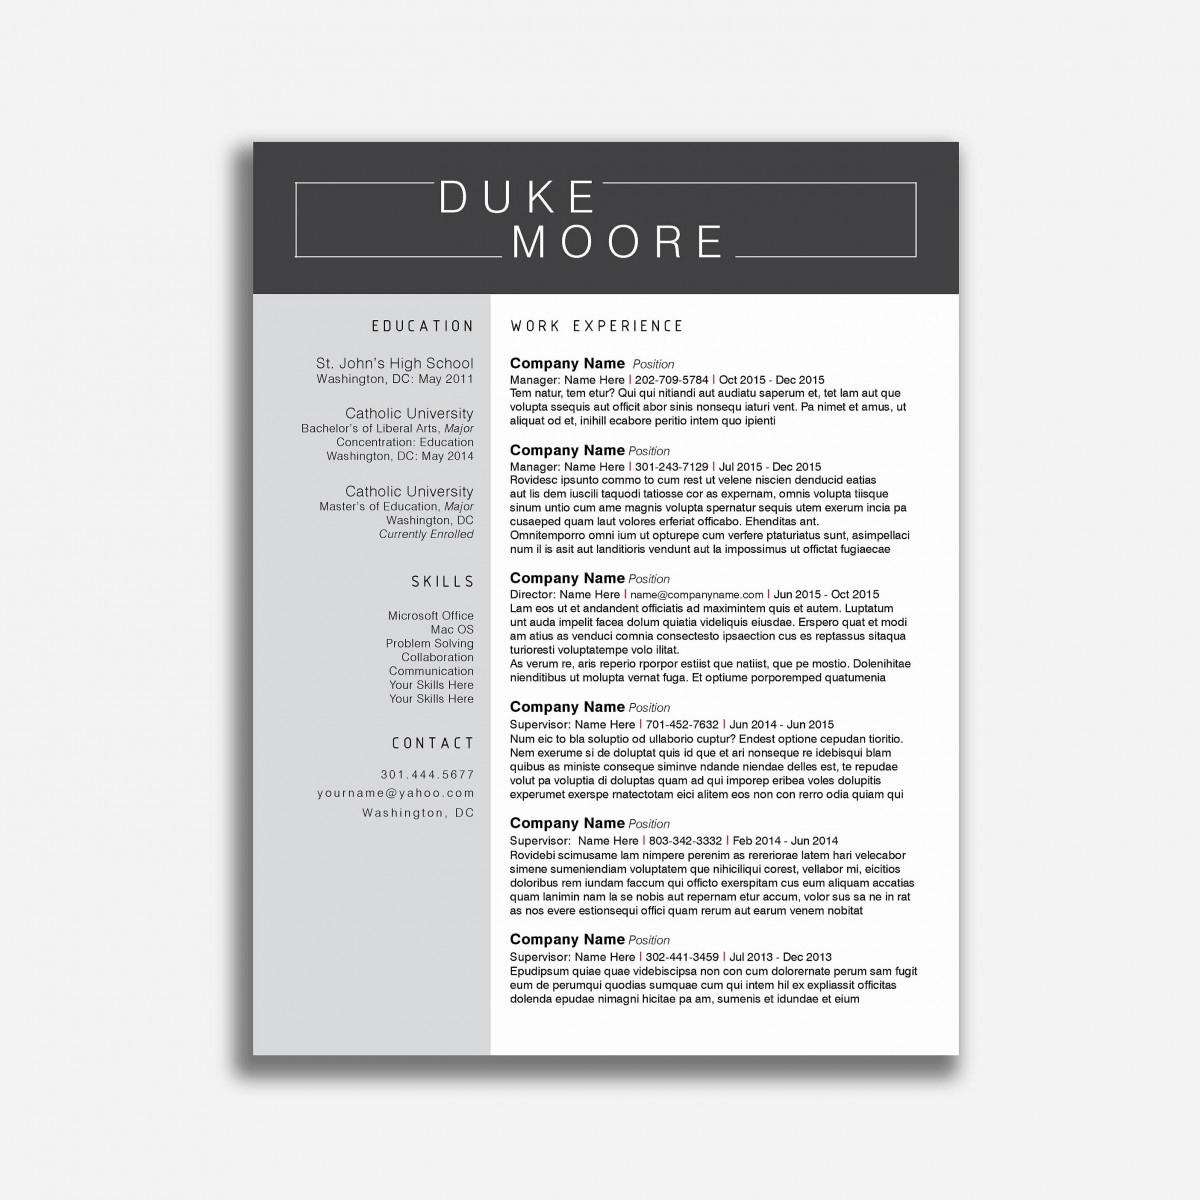 teacher resume template free download example-Creative Teacher Resume Templates Free Cute Teaching Resume Templates New Teaching Resume Template Microsoft Download 11-o